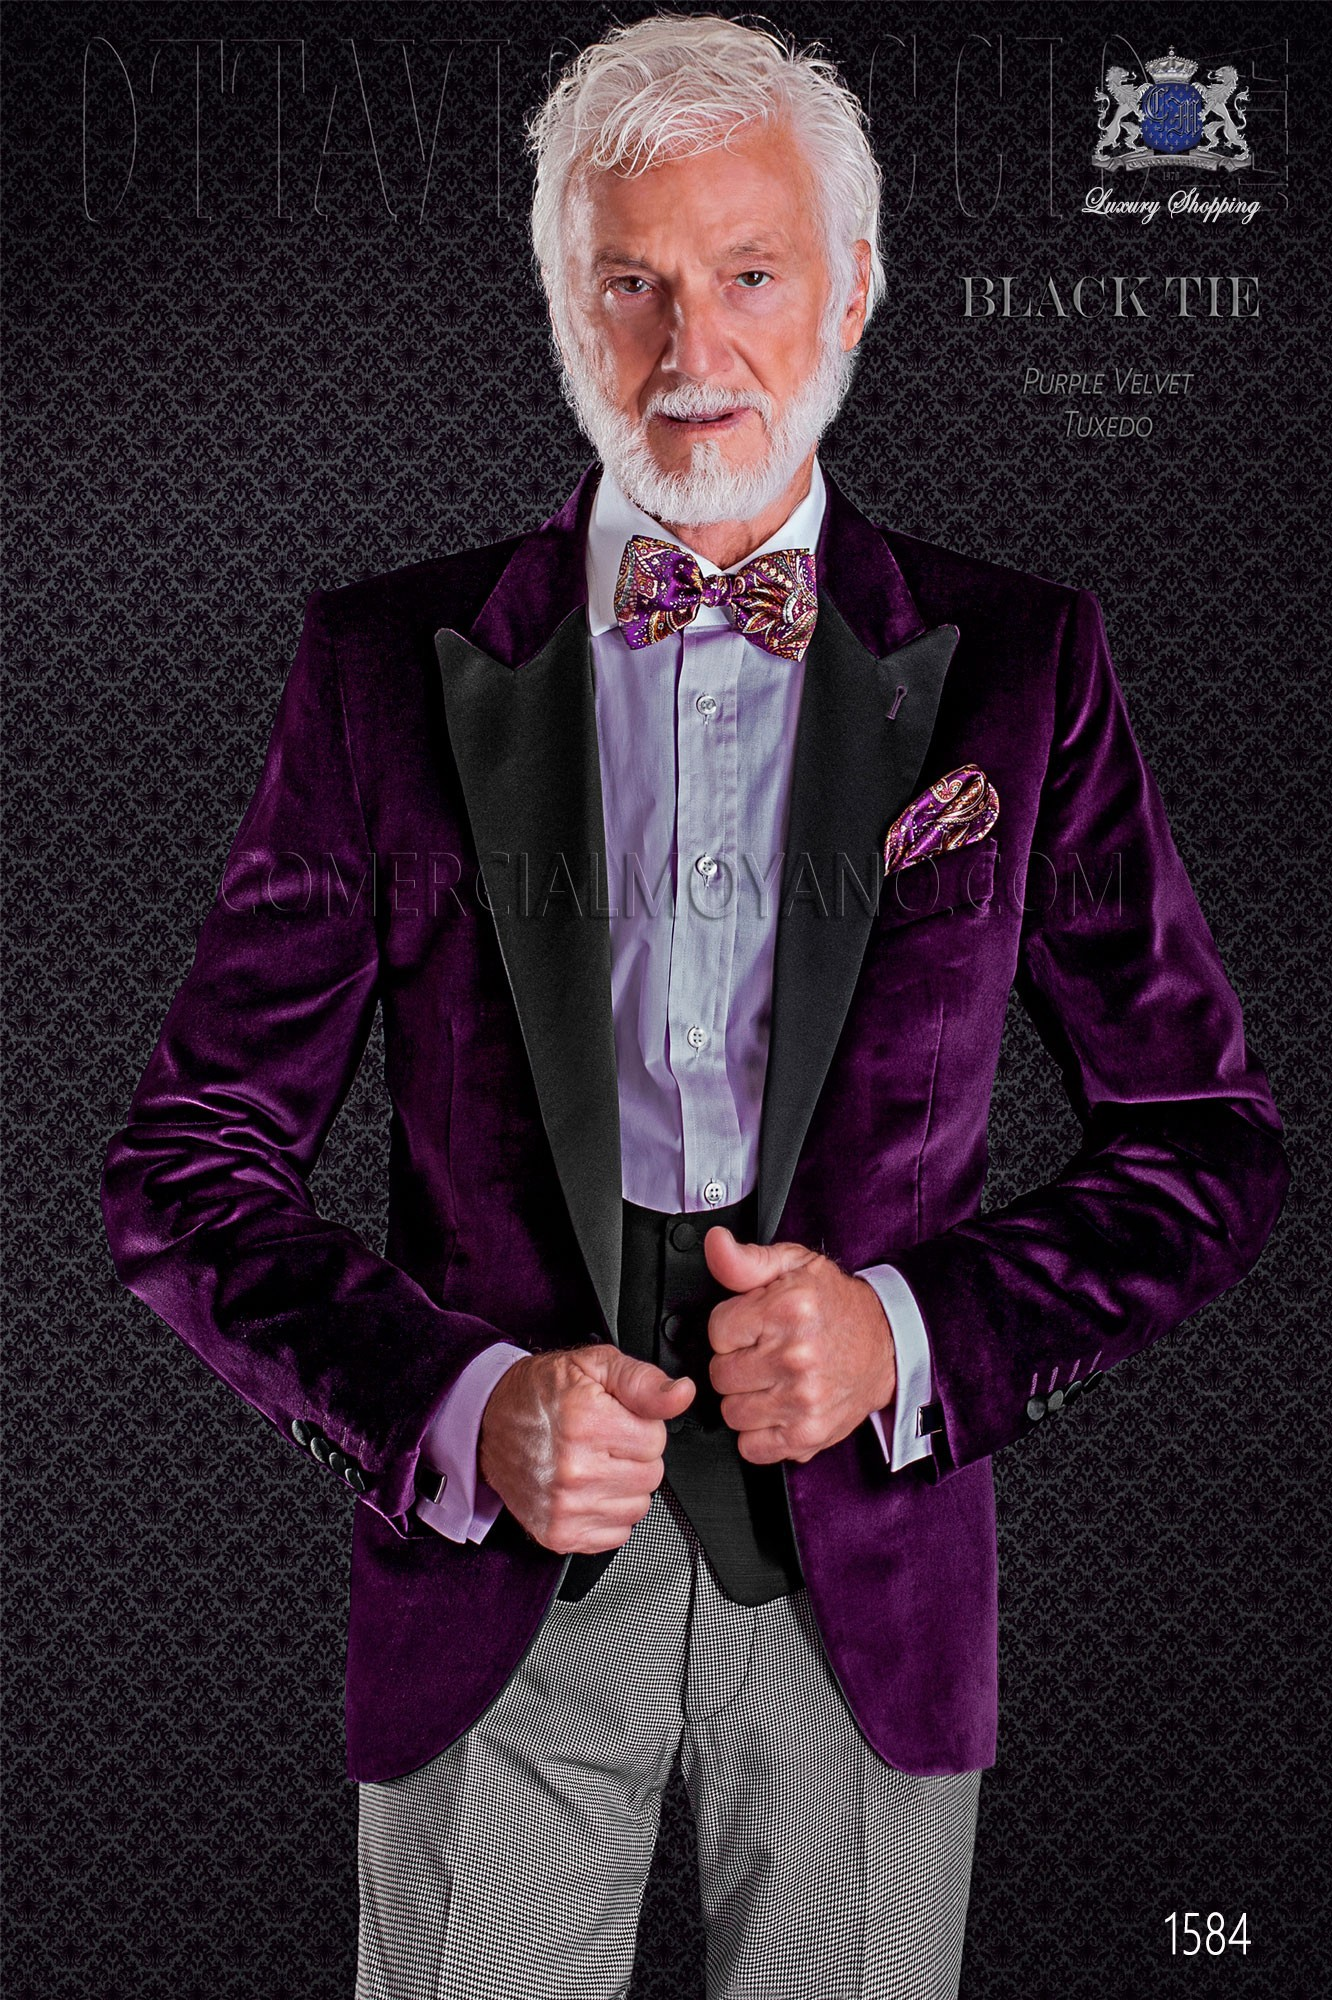 ed039c63dac Peak lapels and 1 button. Fabric velvet 100% cotton. Groom tuxedo pants  combined with mauve fabric houndstooth. Elegance and excellence in evening  dress